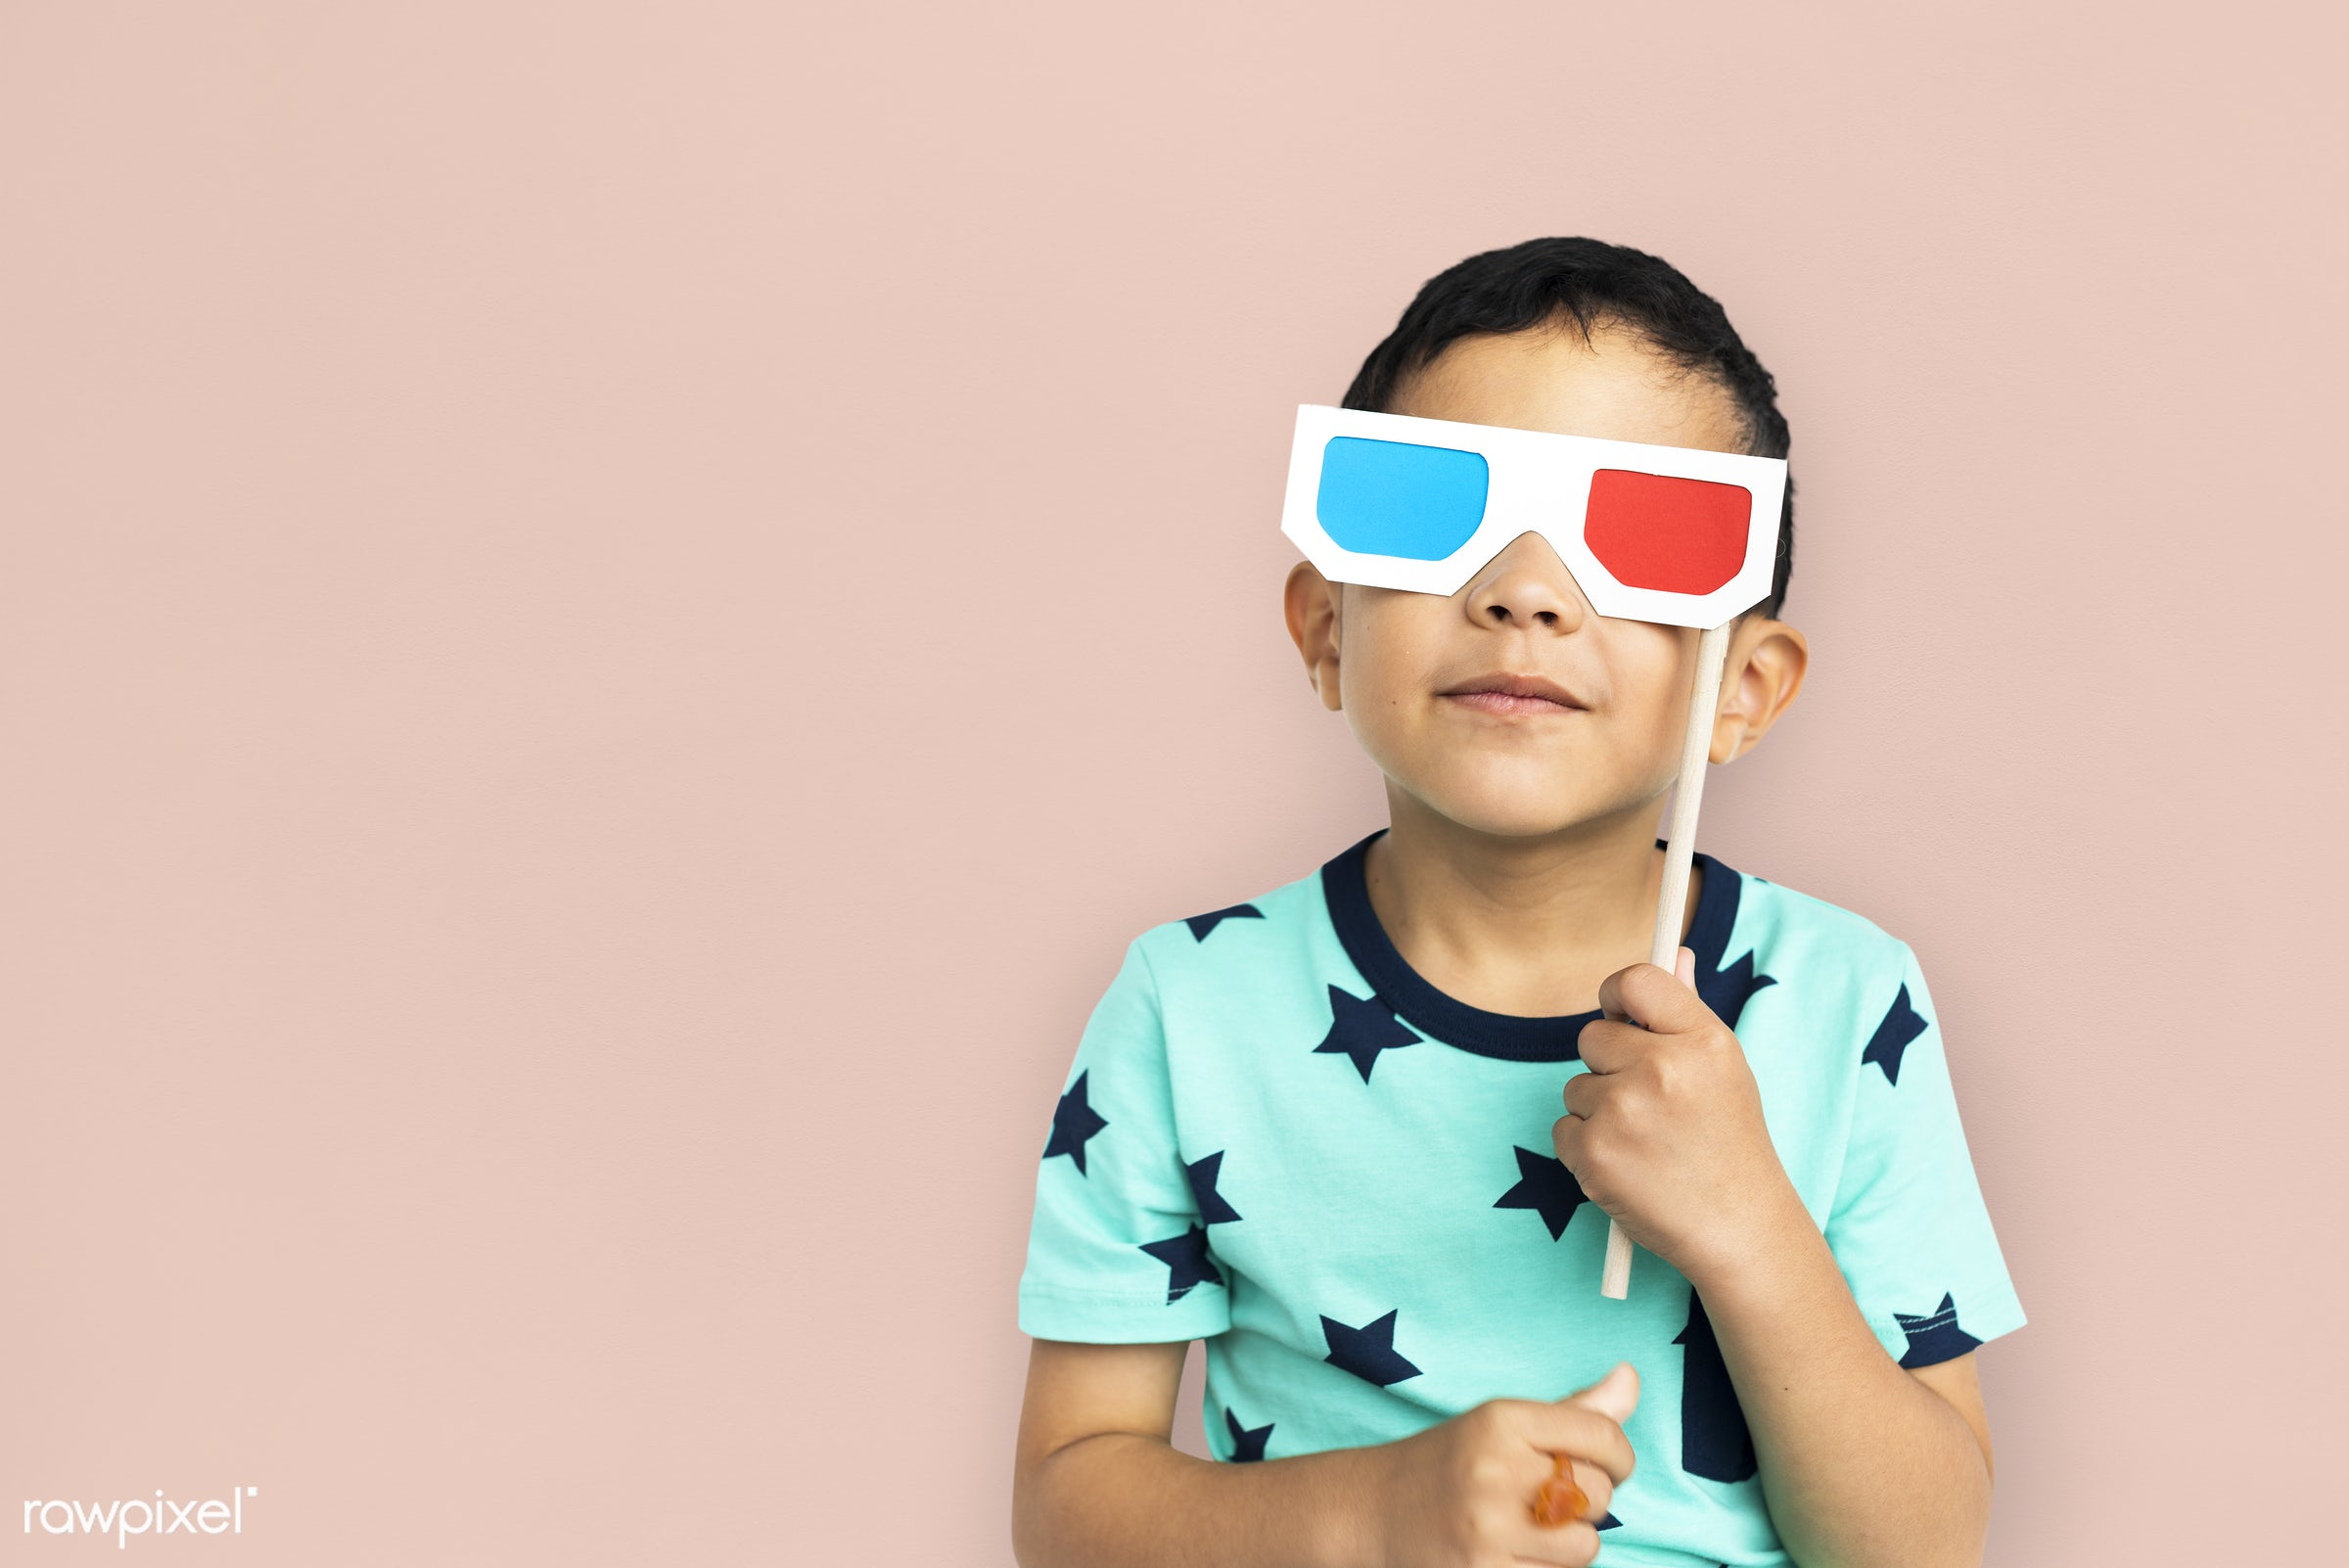 alone, boy, cheerful, child, eyeglasses, isolated, kid, one, playful, smiling, wearing, young, youth, 3d, movie, three...